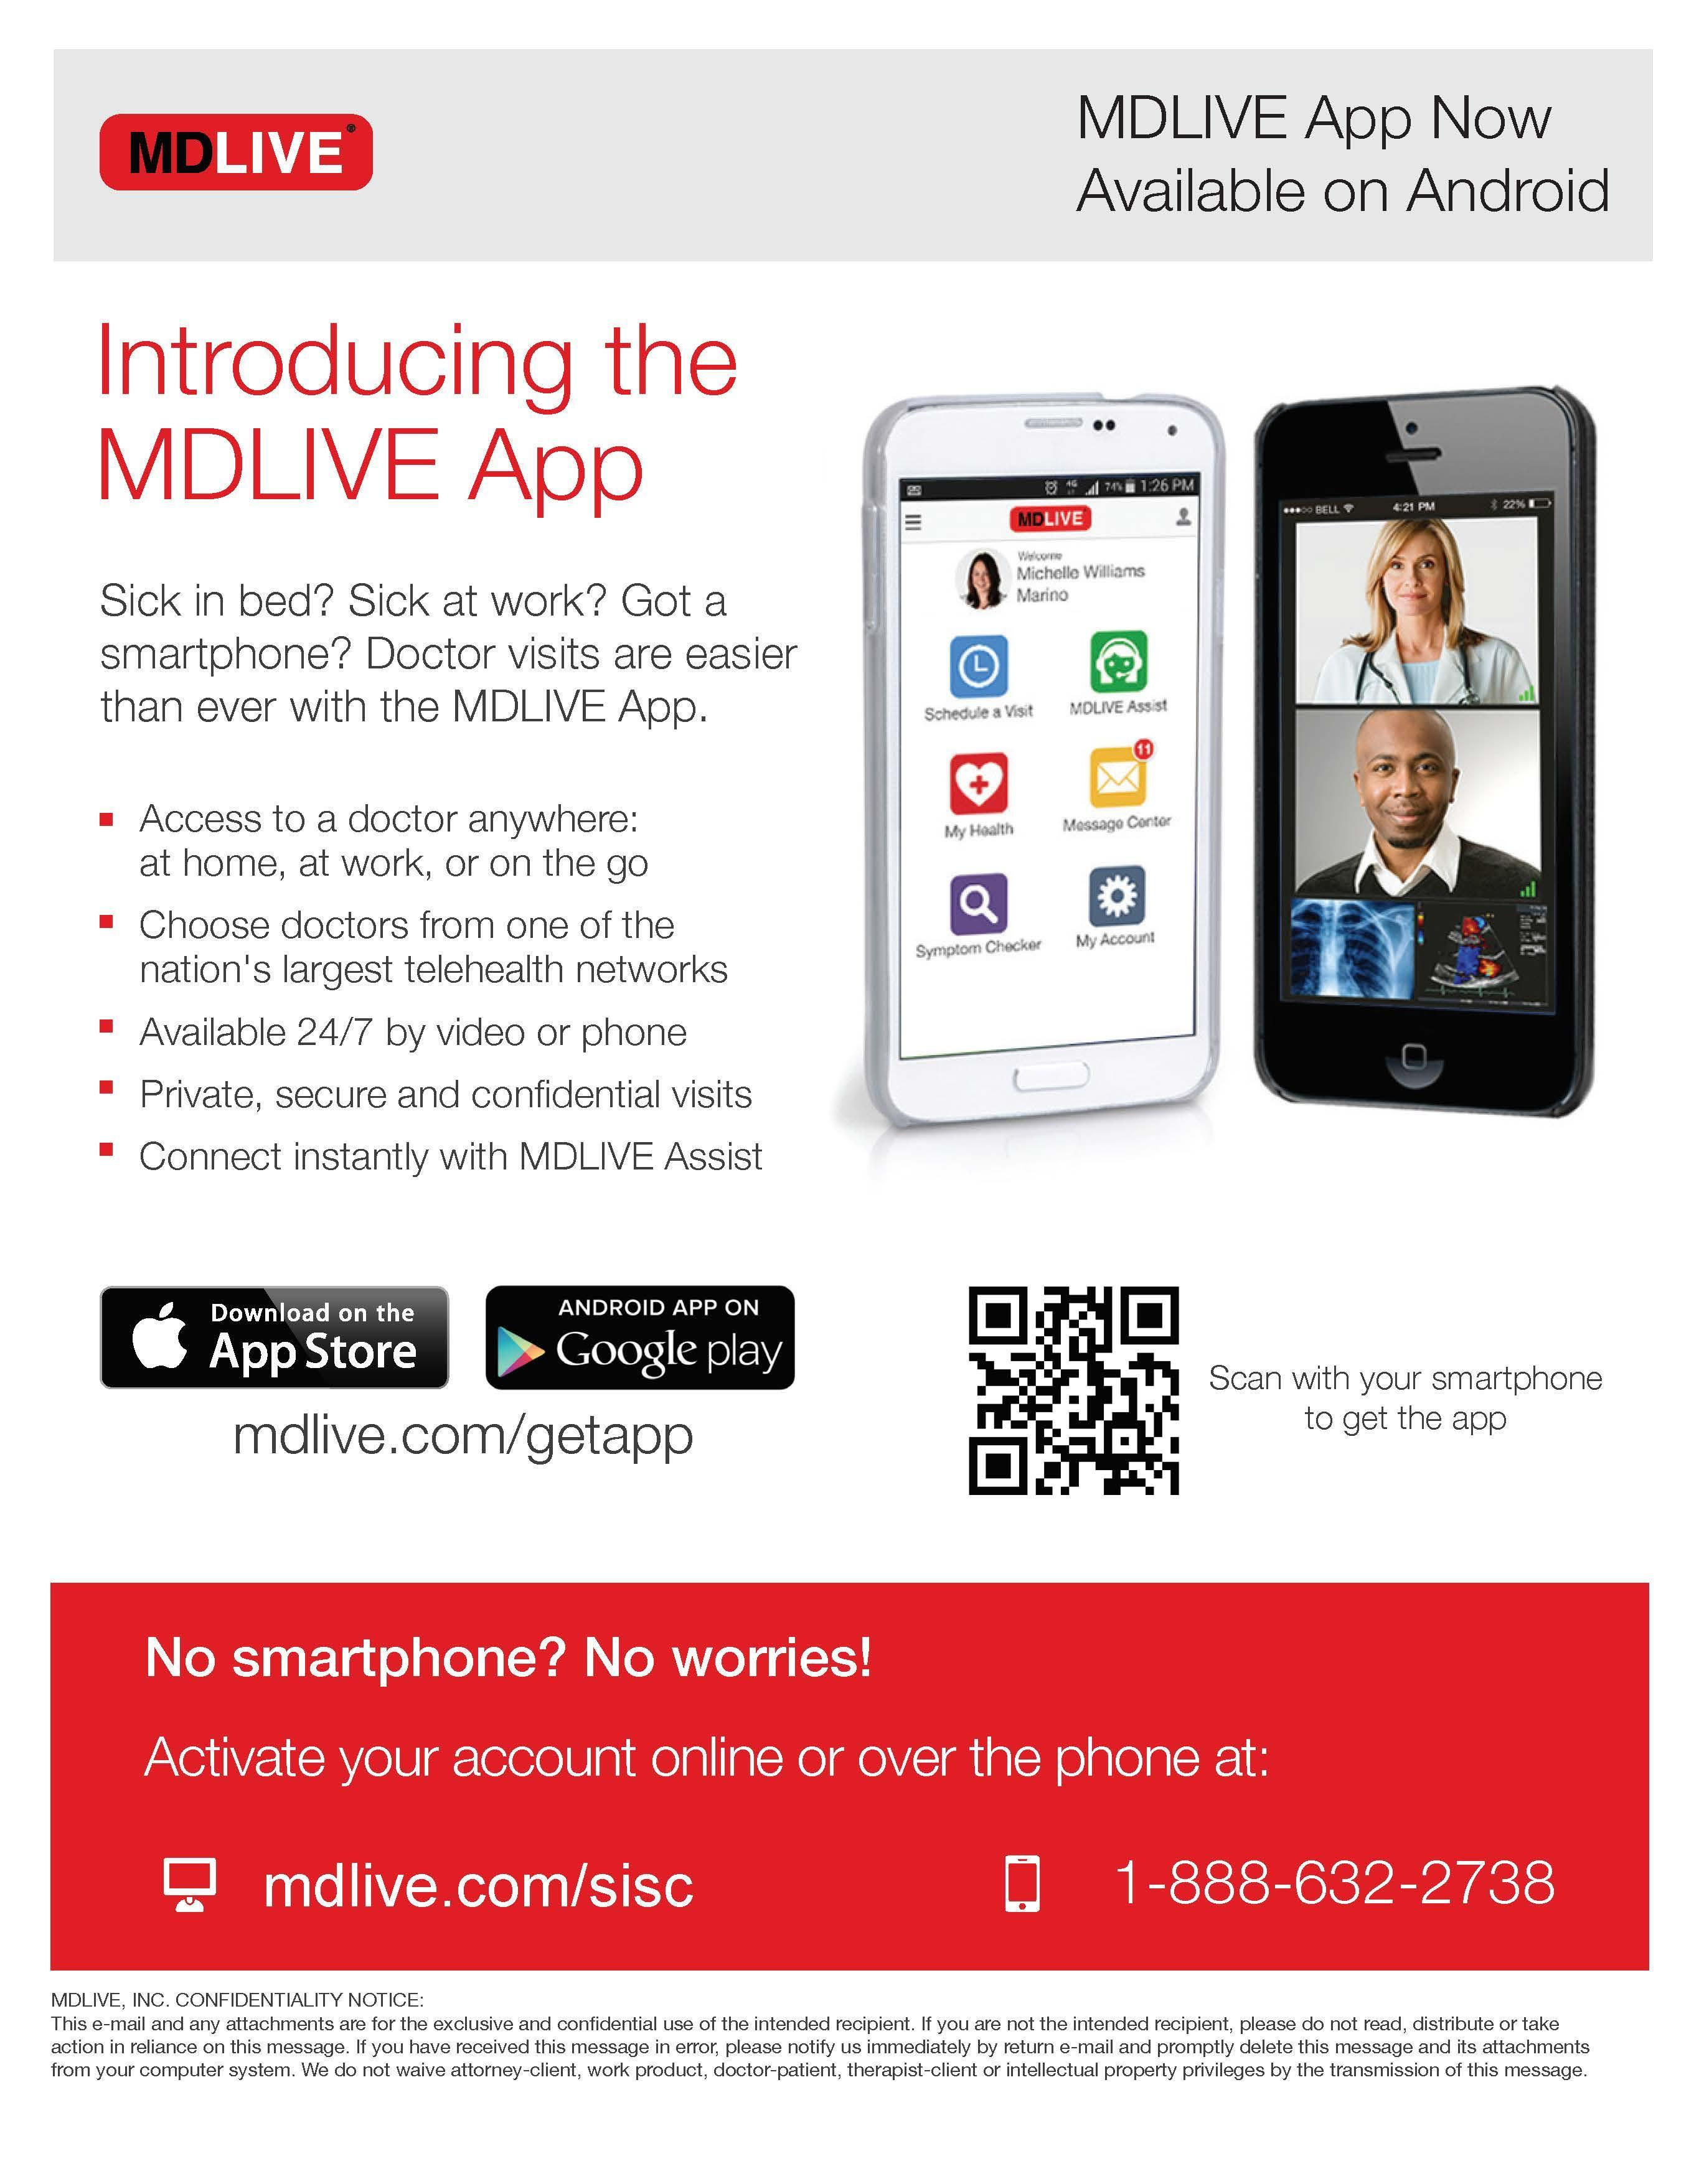 MDLIVE Android App